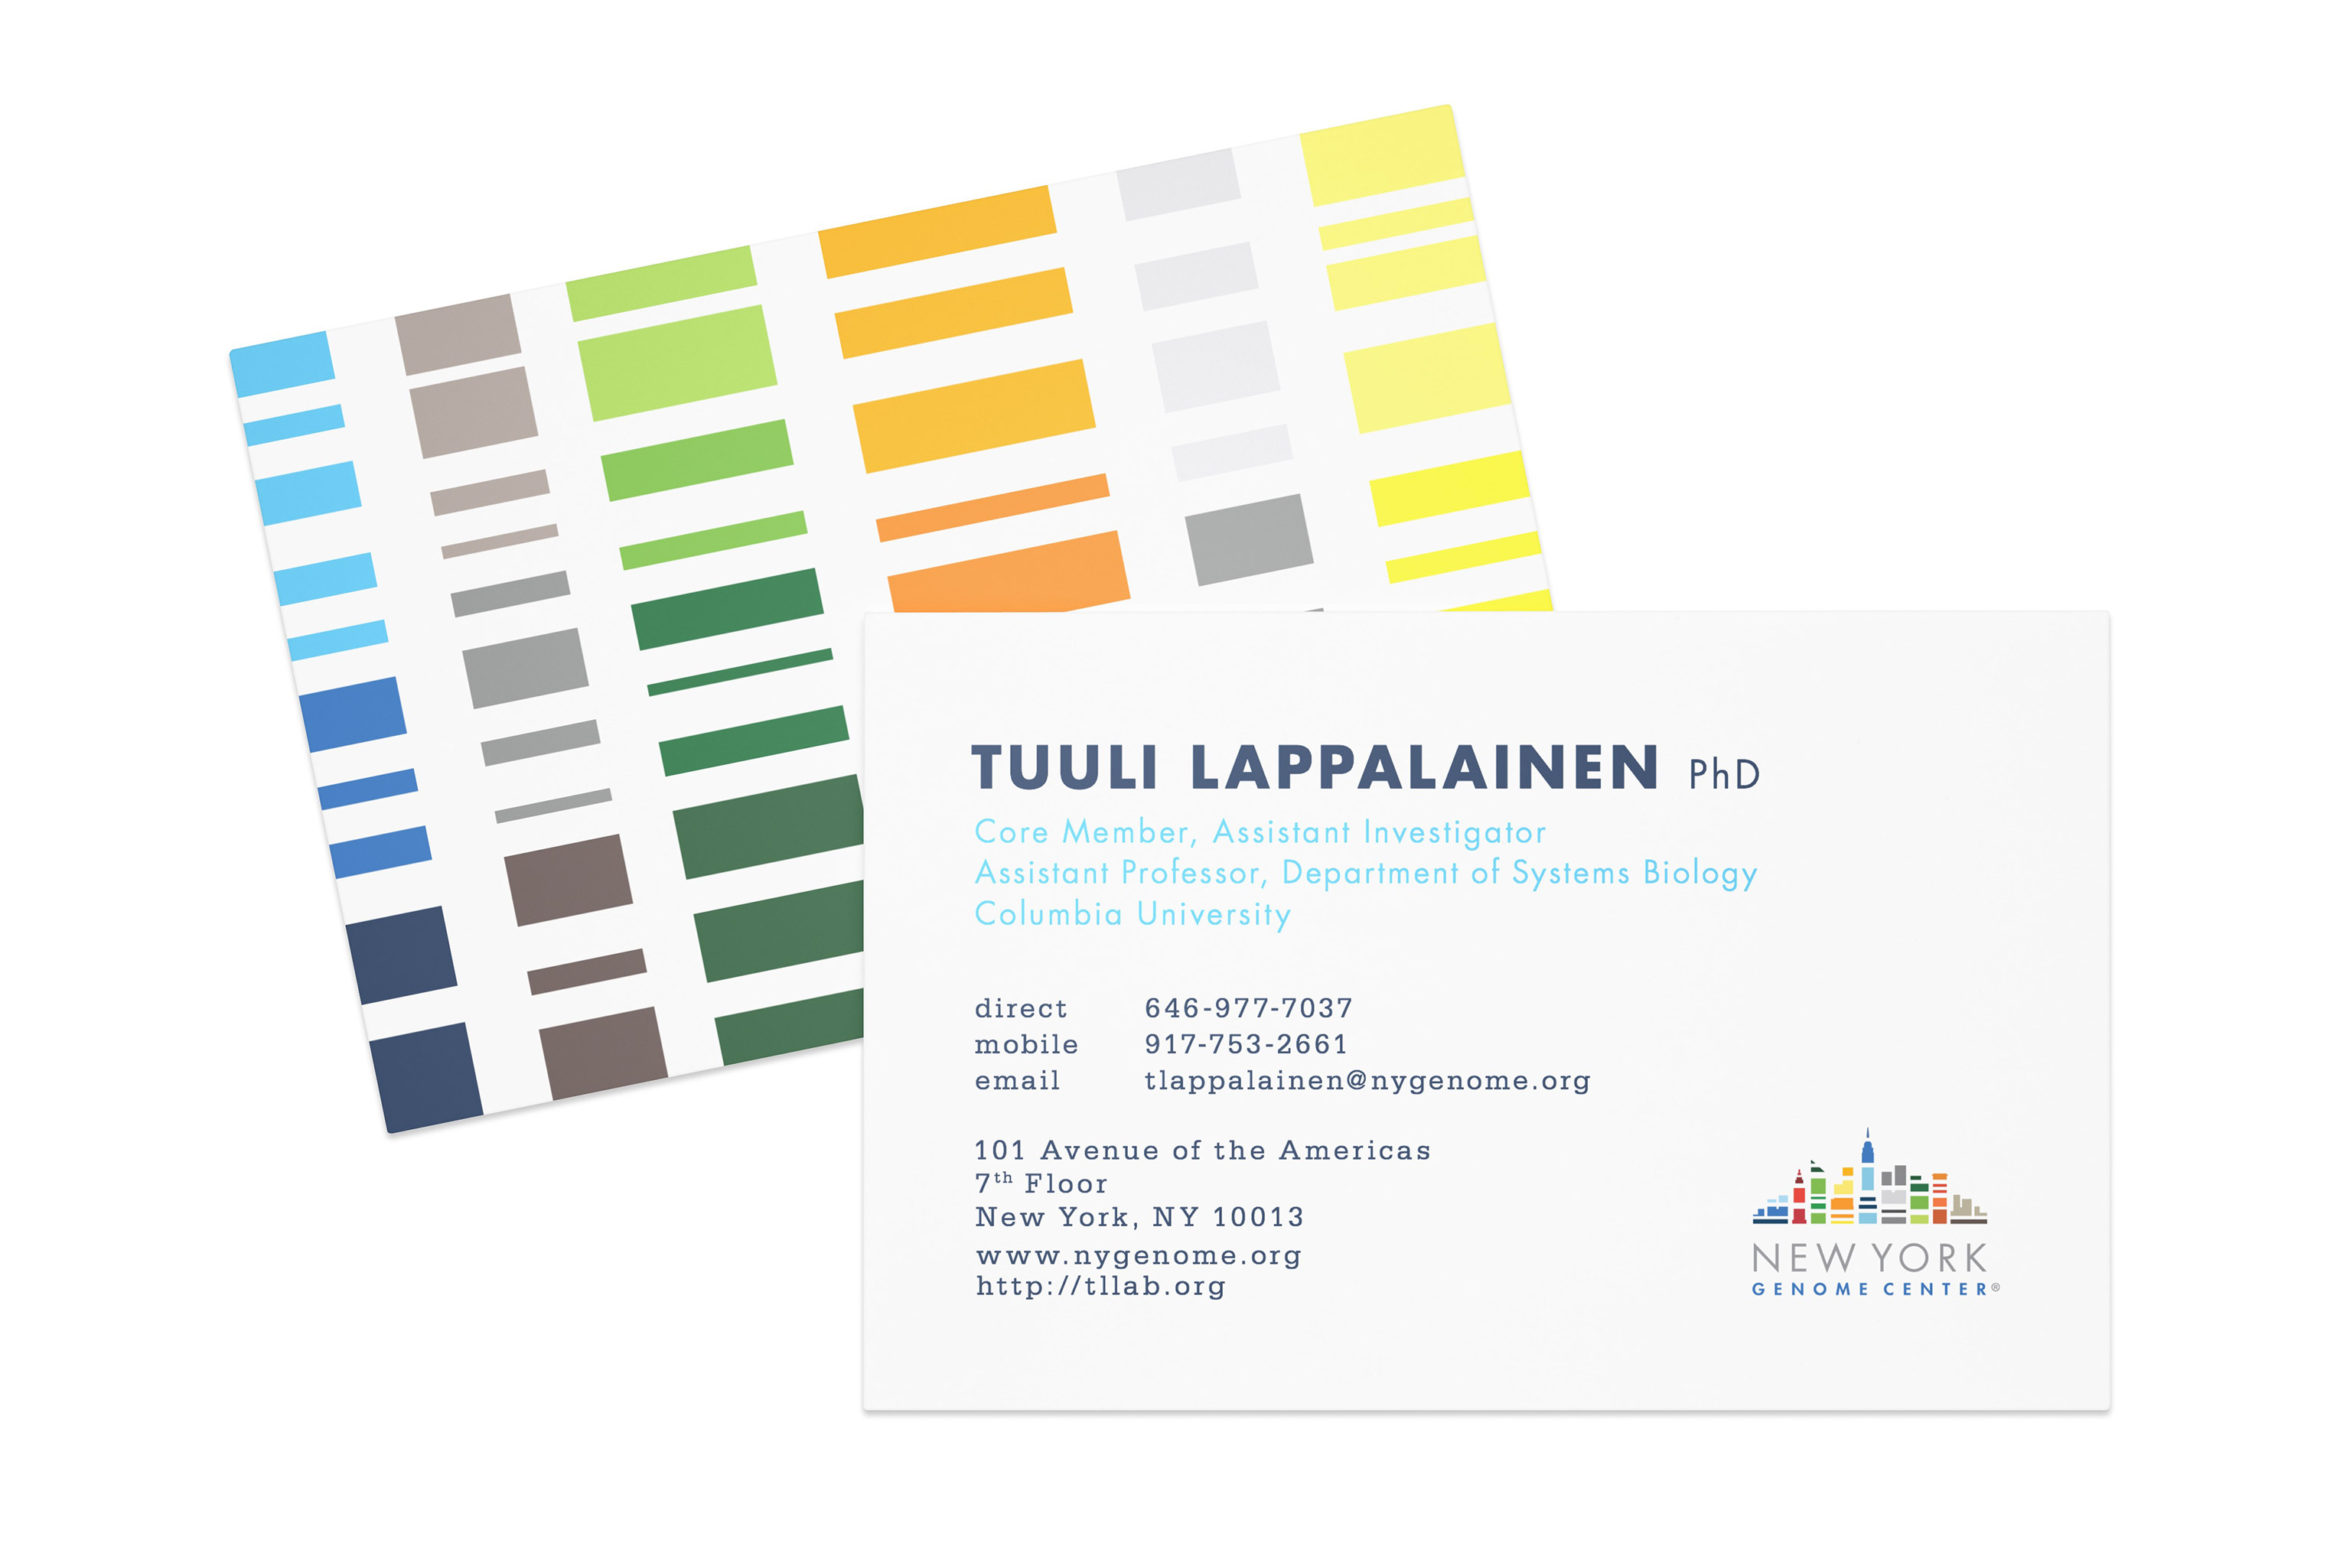 NYGC_businesscard